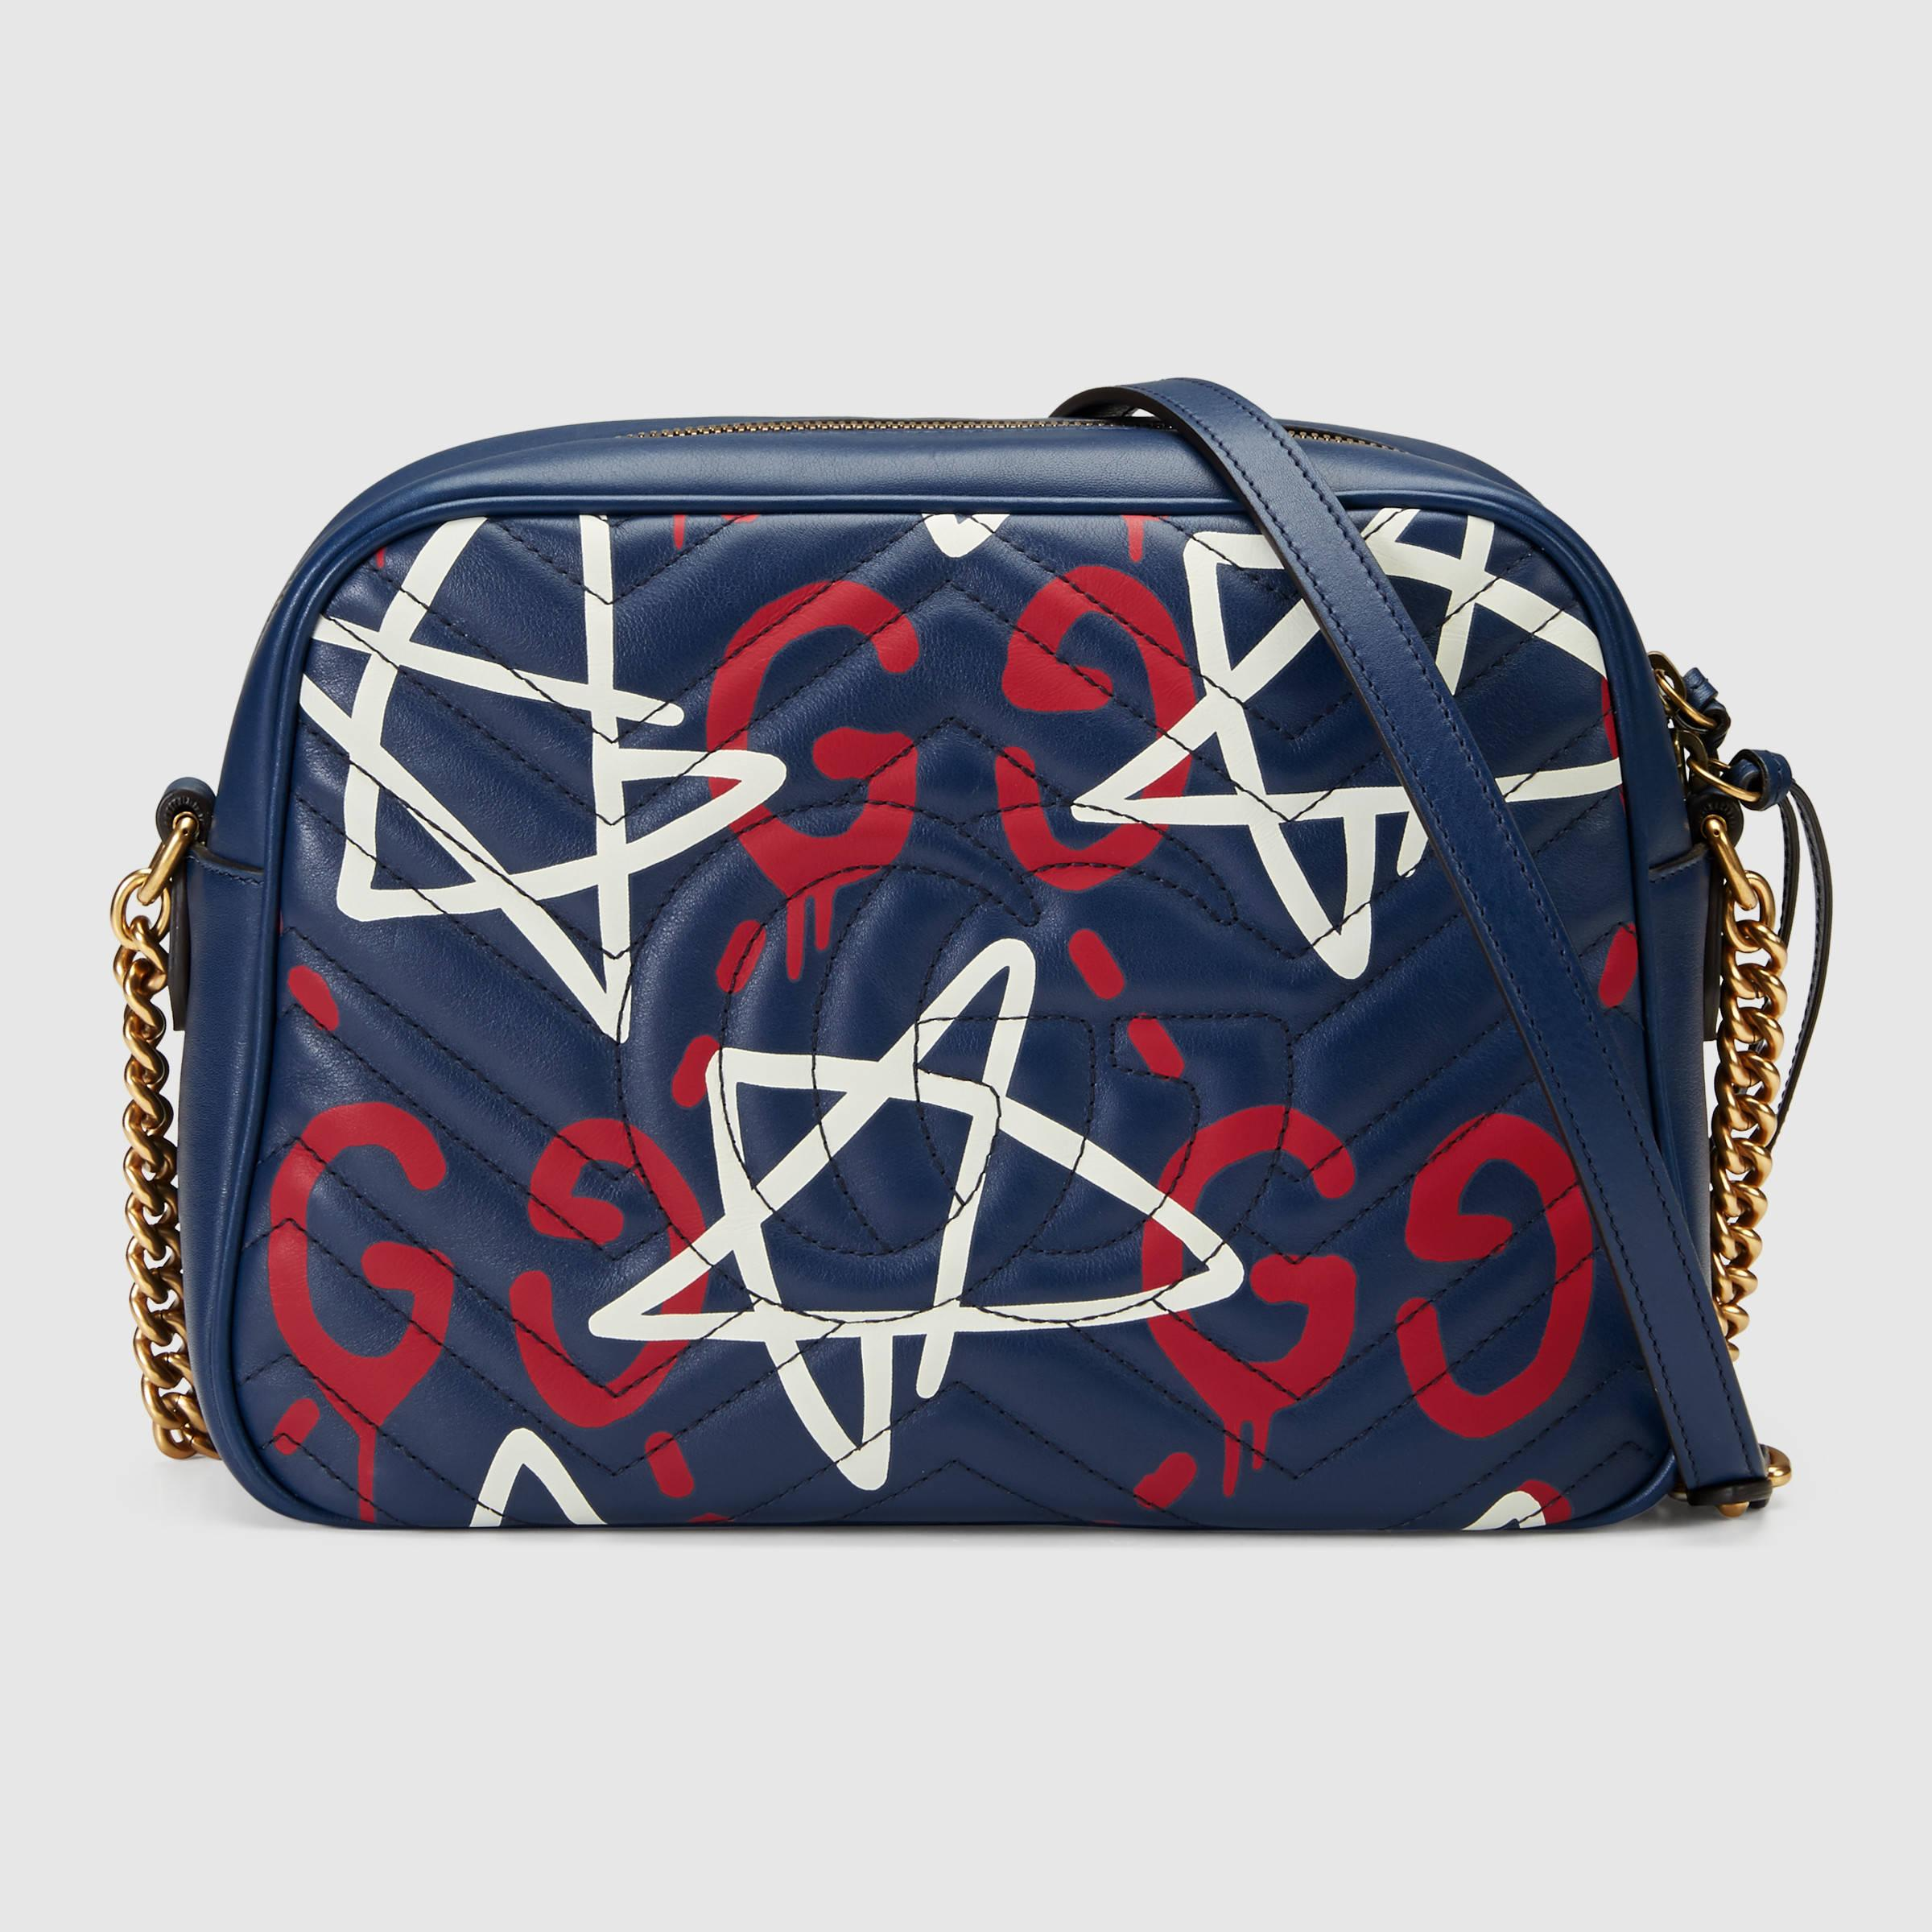 a25bef29d123ad Gucci Gg Marmont Ghost Shoulder Bag - Lyst